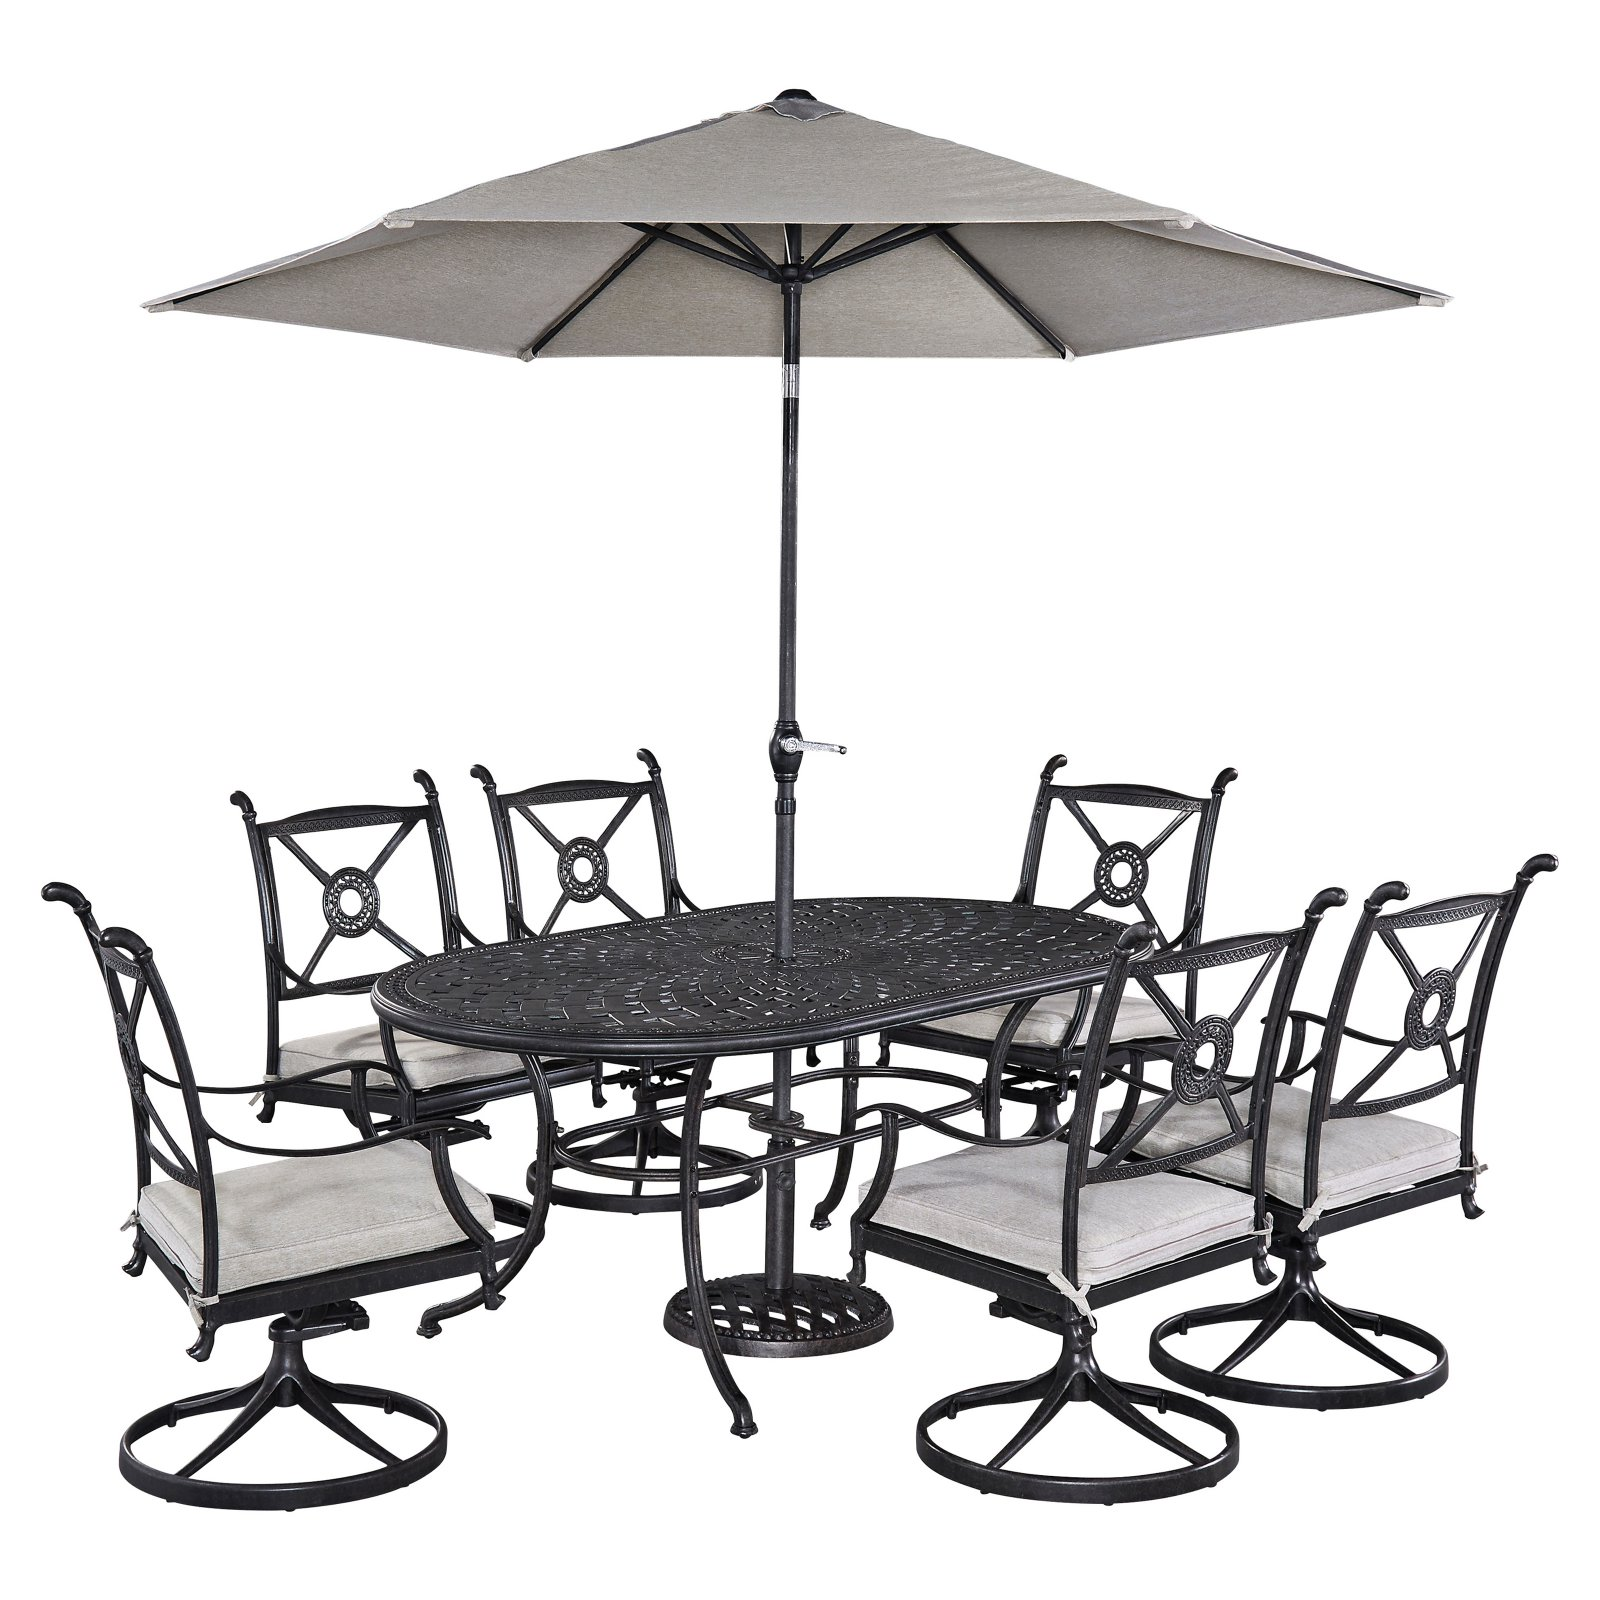 Home Styles Athens Outdoor 7pc Dining Set with Oval Dining Table, 6 Swivel Chairs and Umbrella